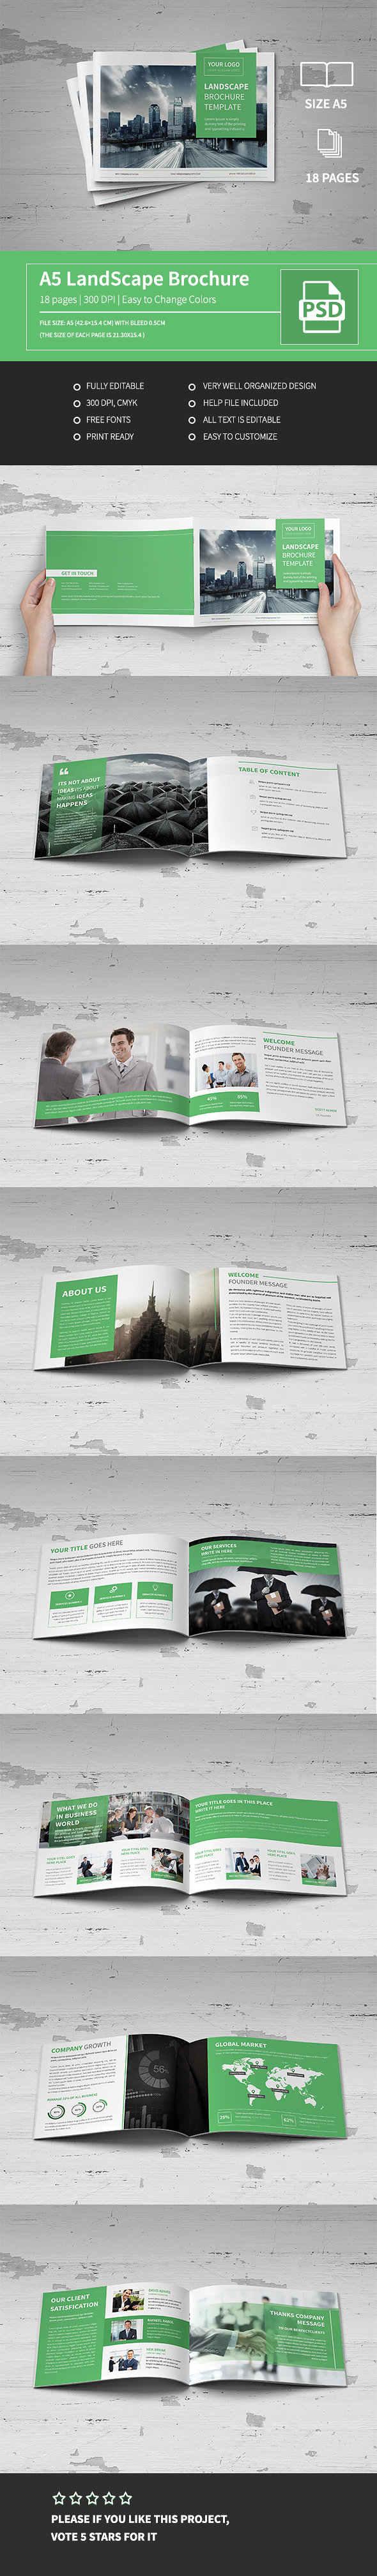 A5 Corporate Business Landscape Brochure